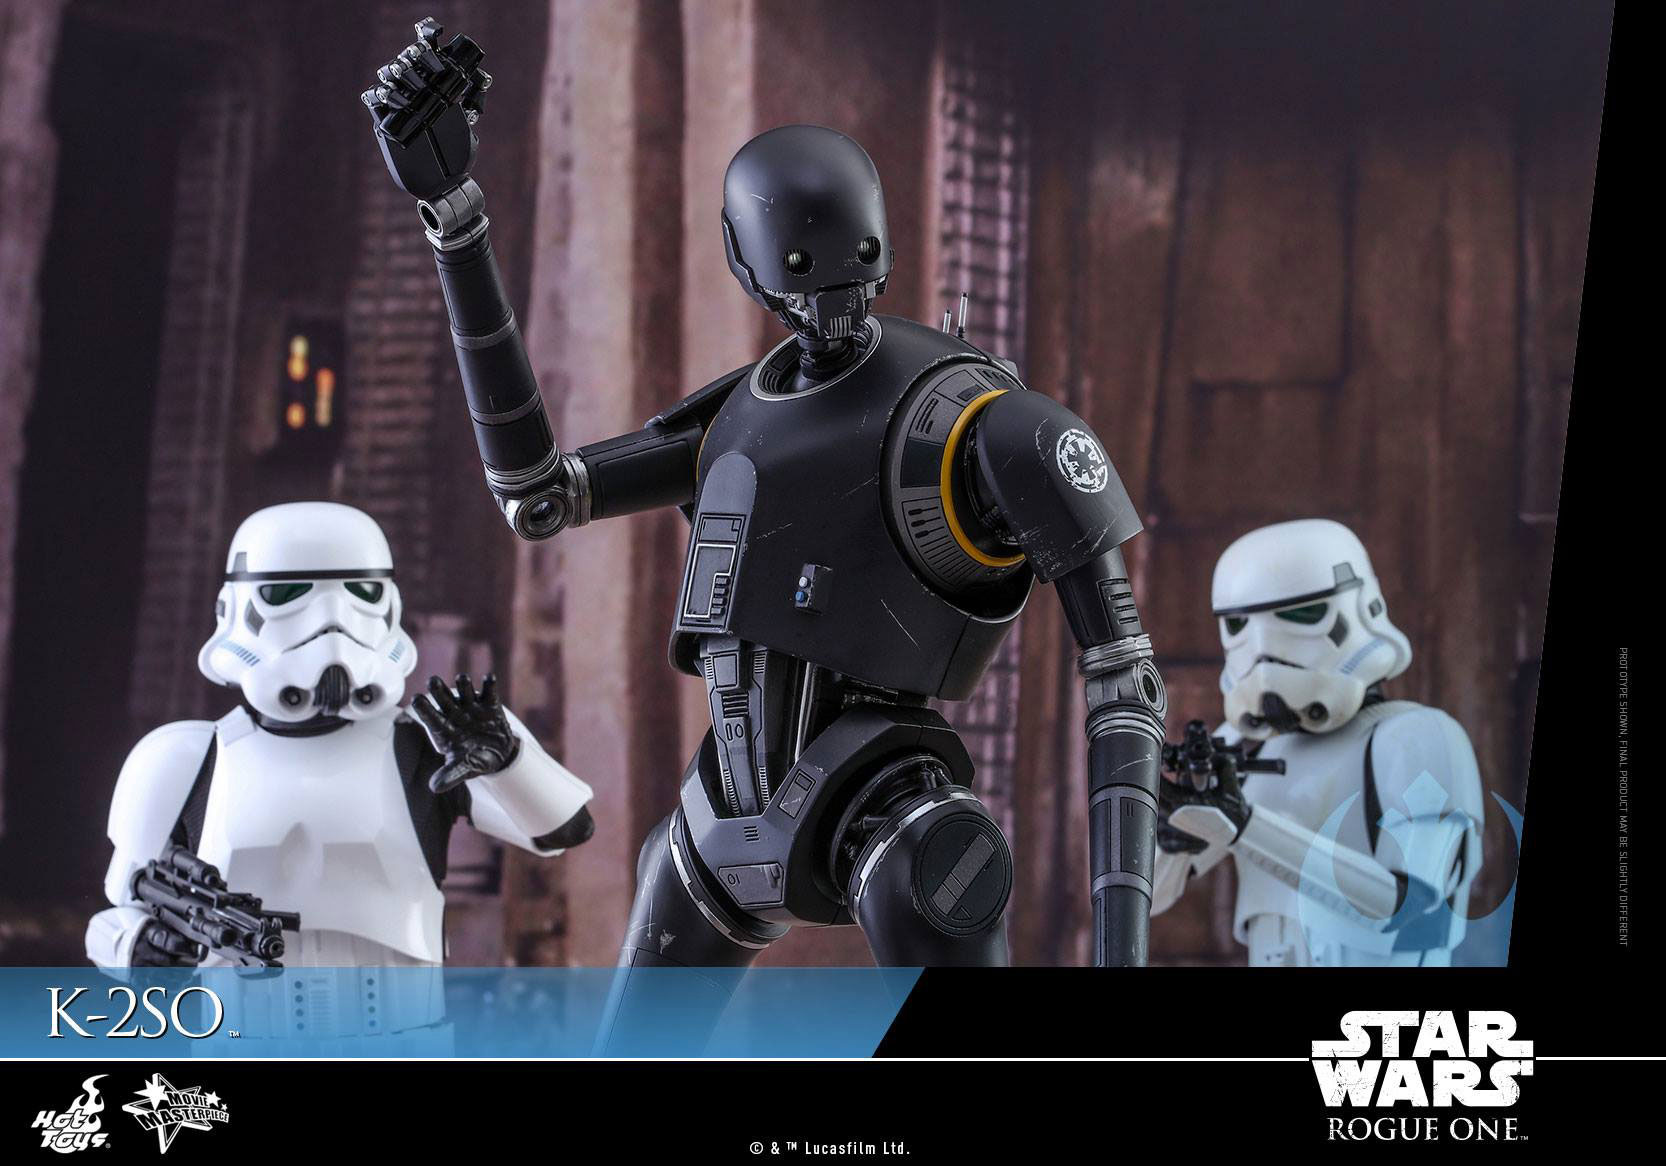 hot-toys-star-wars-rogue-one-K-2SO-figure-2